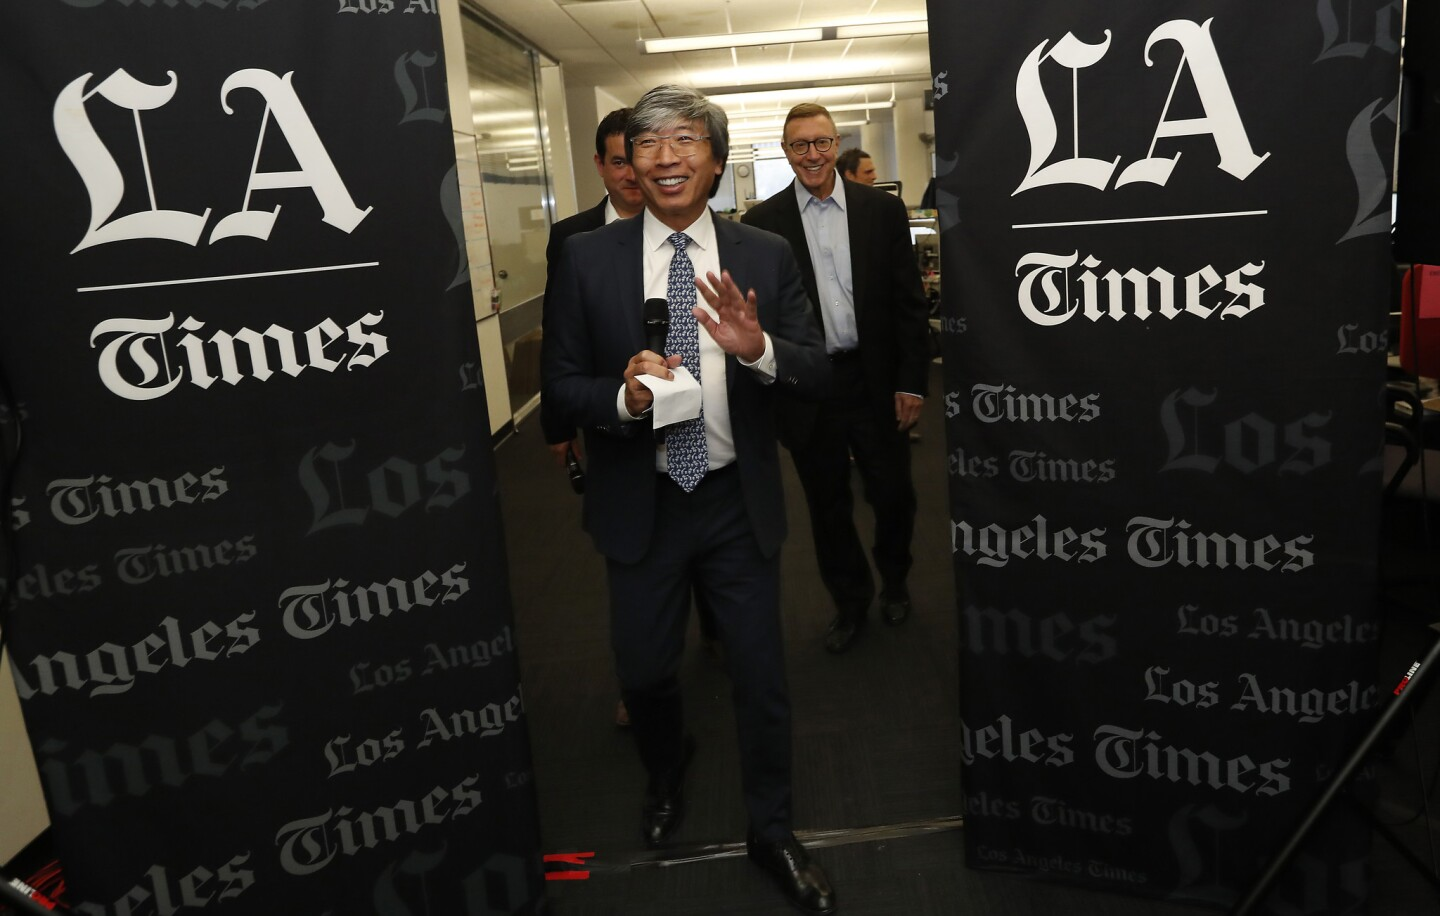 Dr. Patrick Soon-Shiong, foreground, in the Los Angeles Times newsroom Monday. He has taken the title of executive chairman of The Times and California Times, the new corporate moniker for the group of publications that he acquired. Behind him are Chris Argentieri, left, currently the general manager of The Times who will become chief operating officer of California Times, and Norman Pearlstine, who has been named executive editor of The Times.